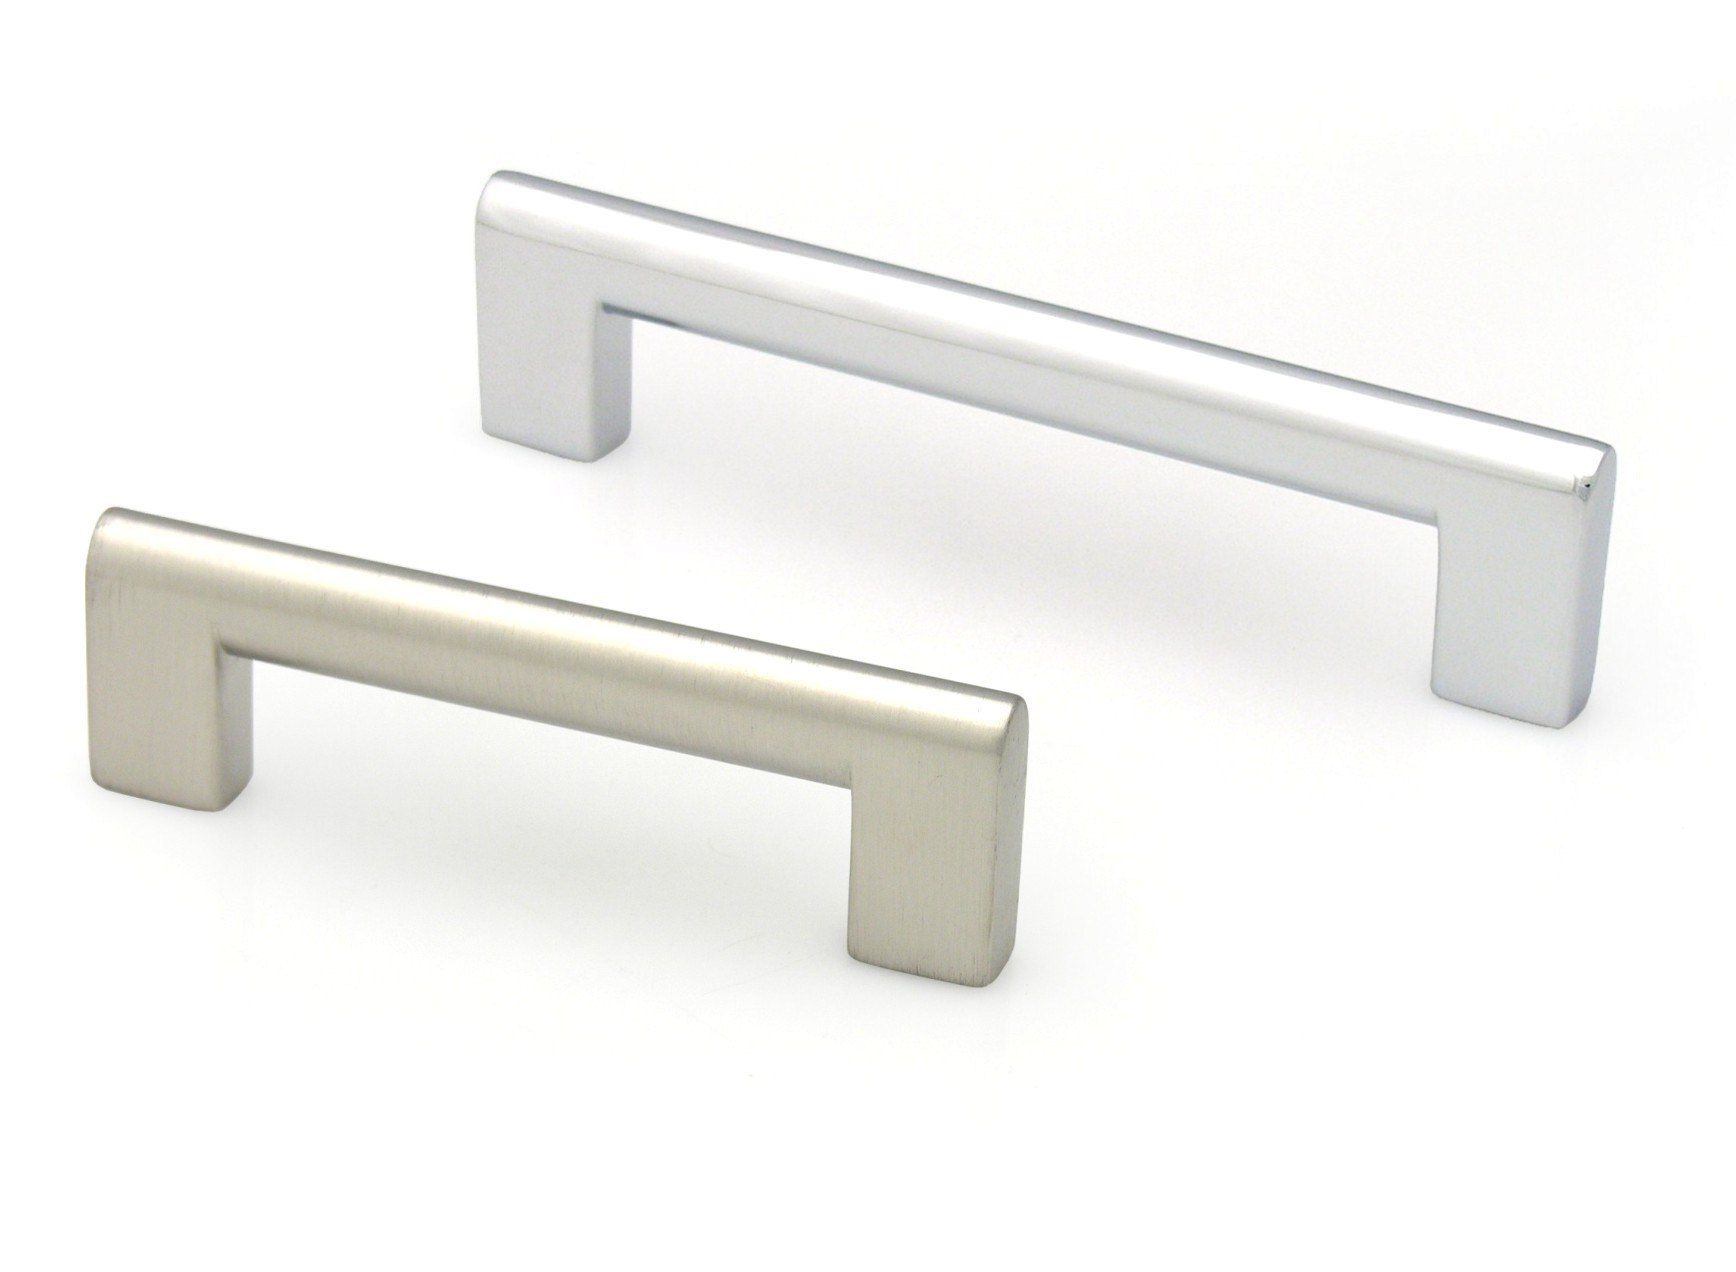 TOPEX Z01120960041 FLAT EDGE PULL 3 3/4 INCHES (96MM) BRIGHT CHROME